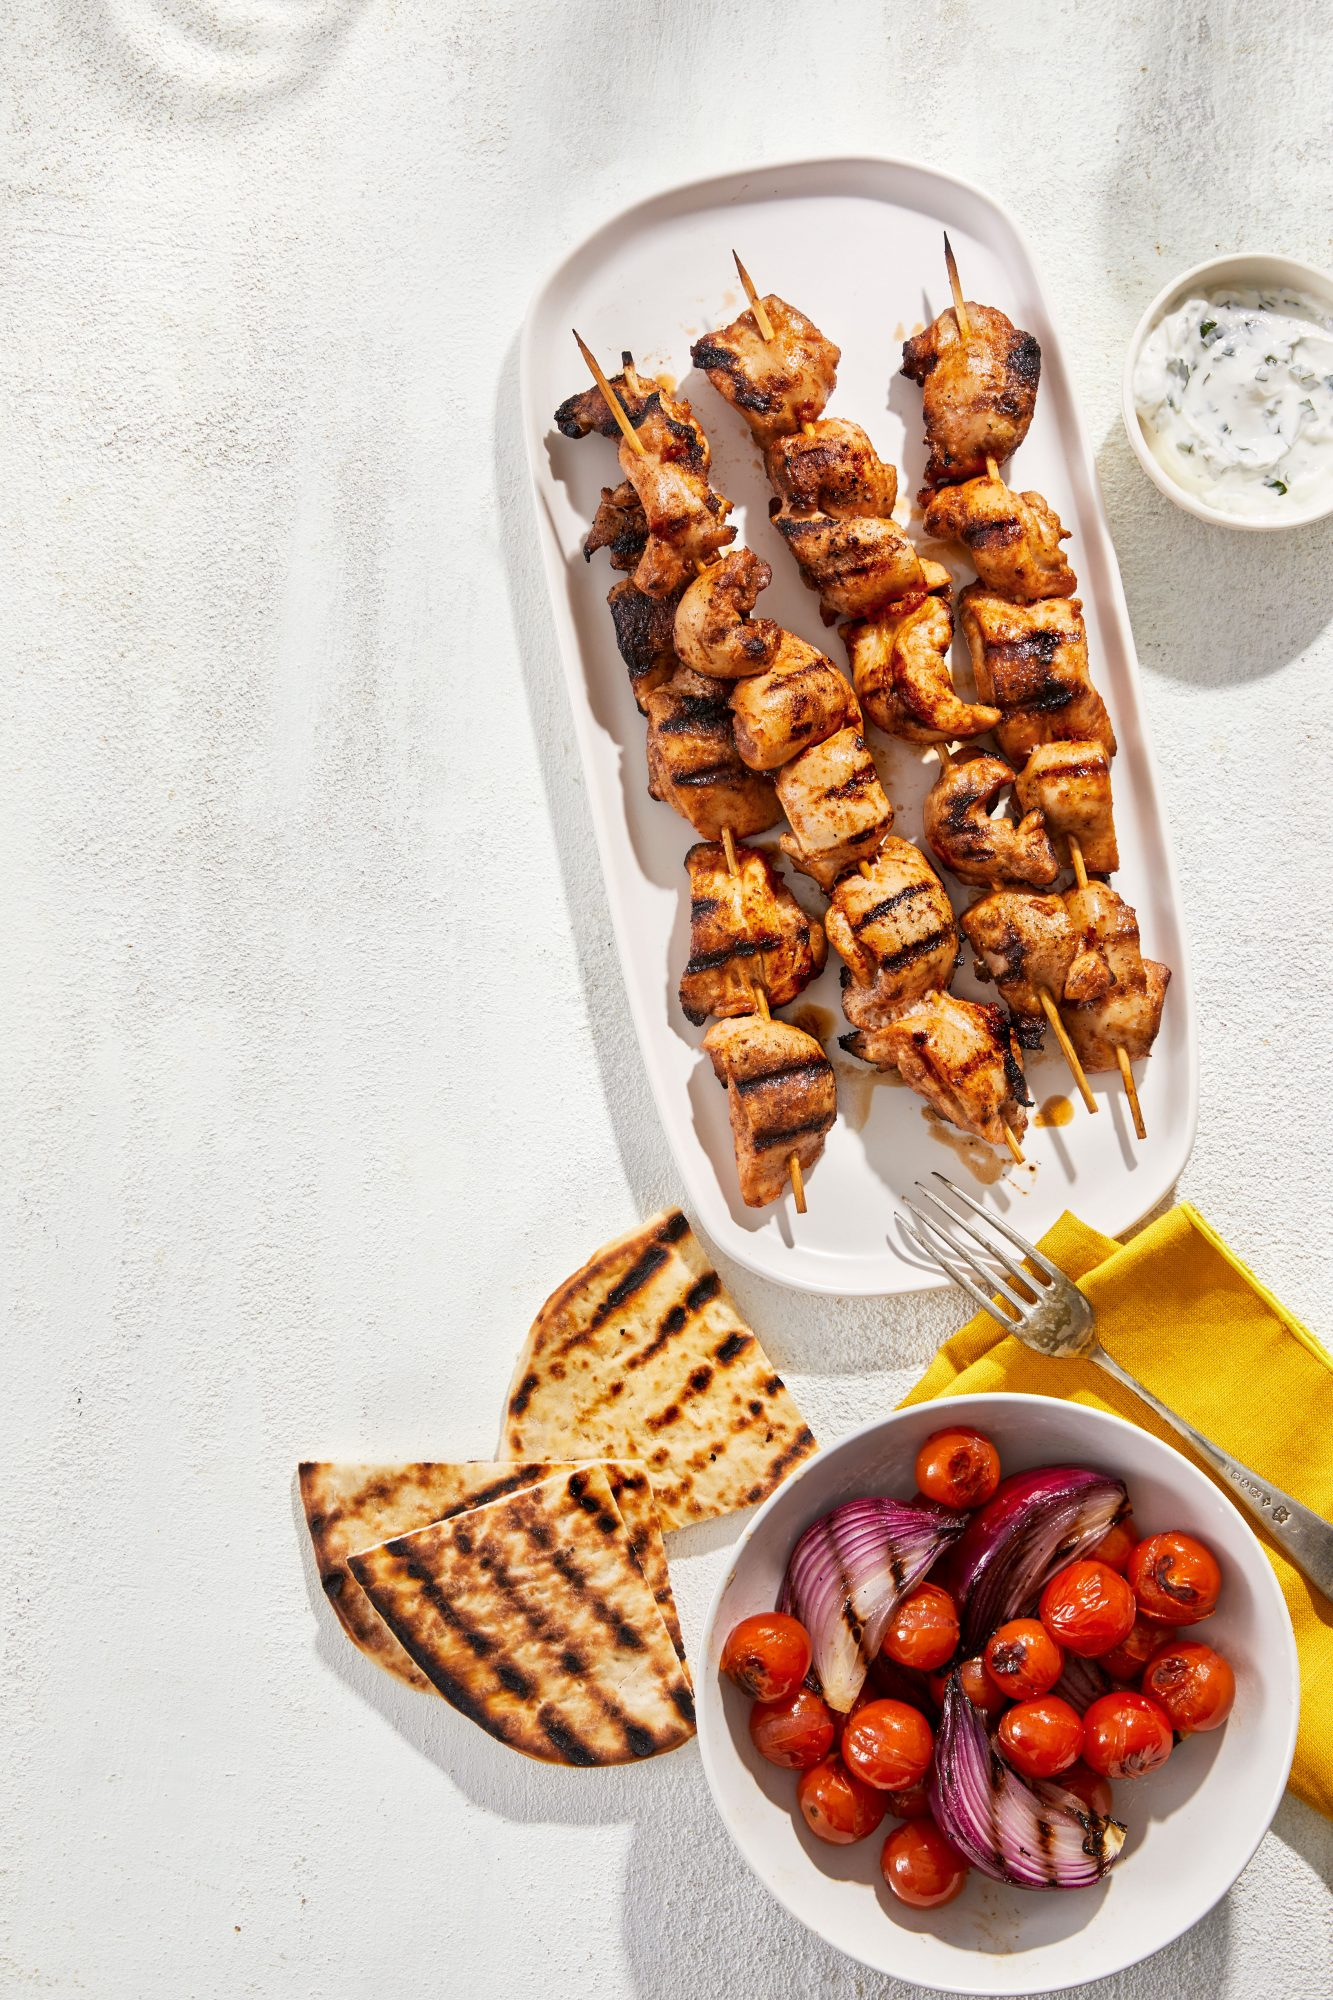 Spiced Chicken and Veggie Kebabs With Grilled Pita Bread